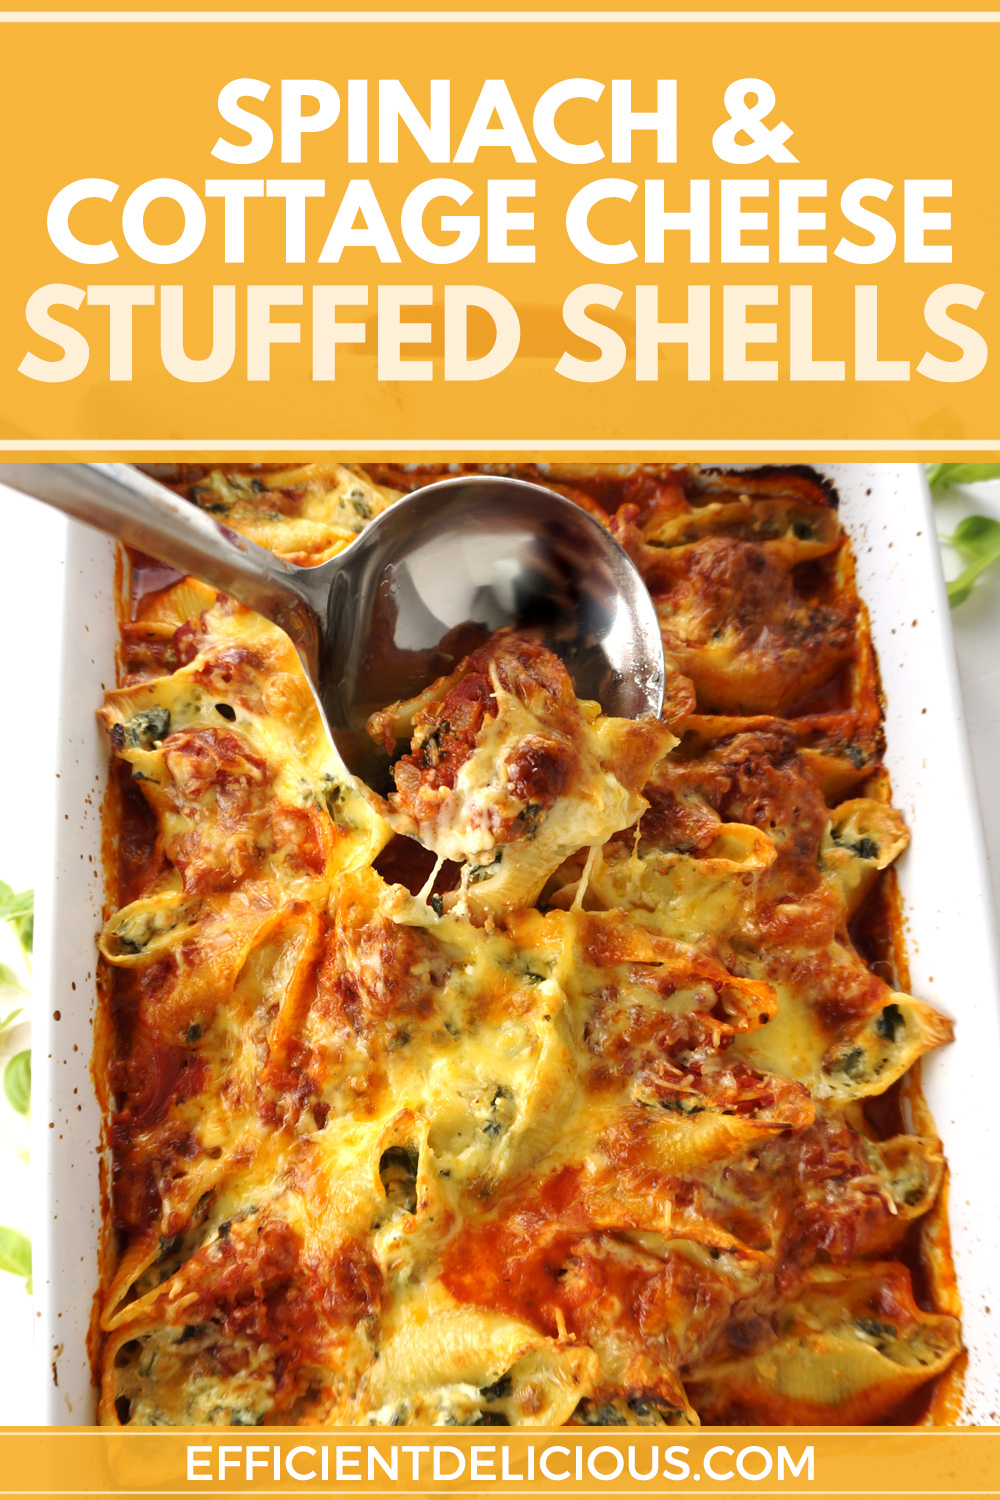 conchiglioni pasta bake with ladle and title banner across the top